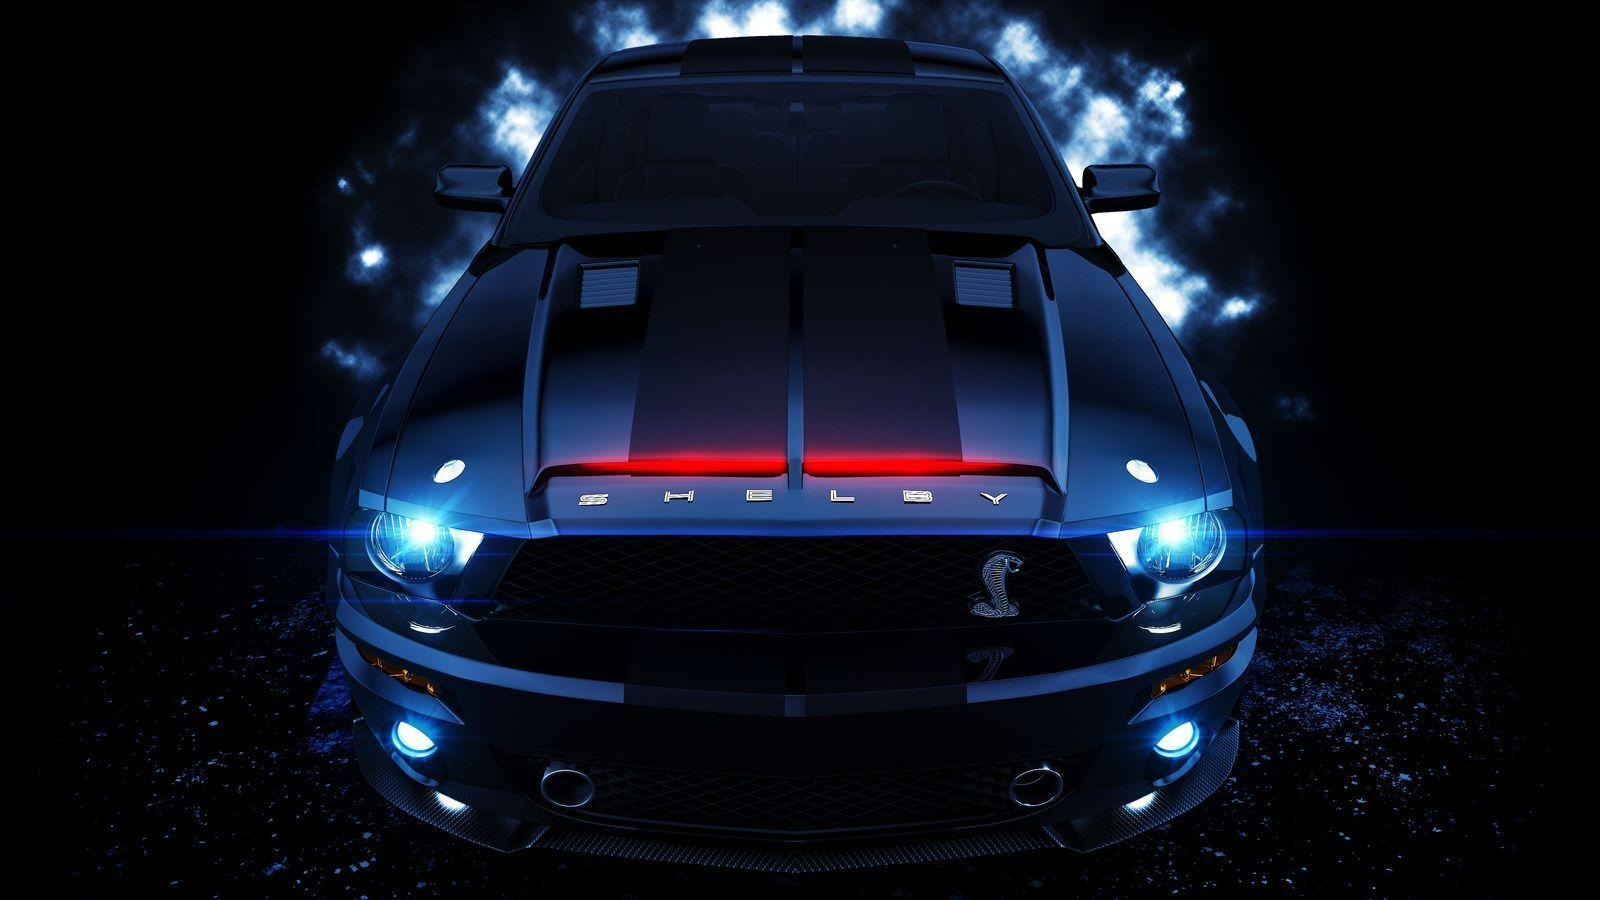 2015 Ford Mustang Shelby Knight Rider HD Wallpapers